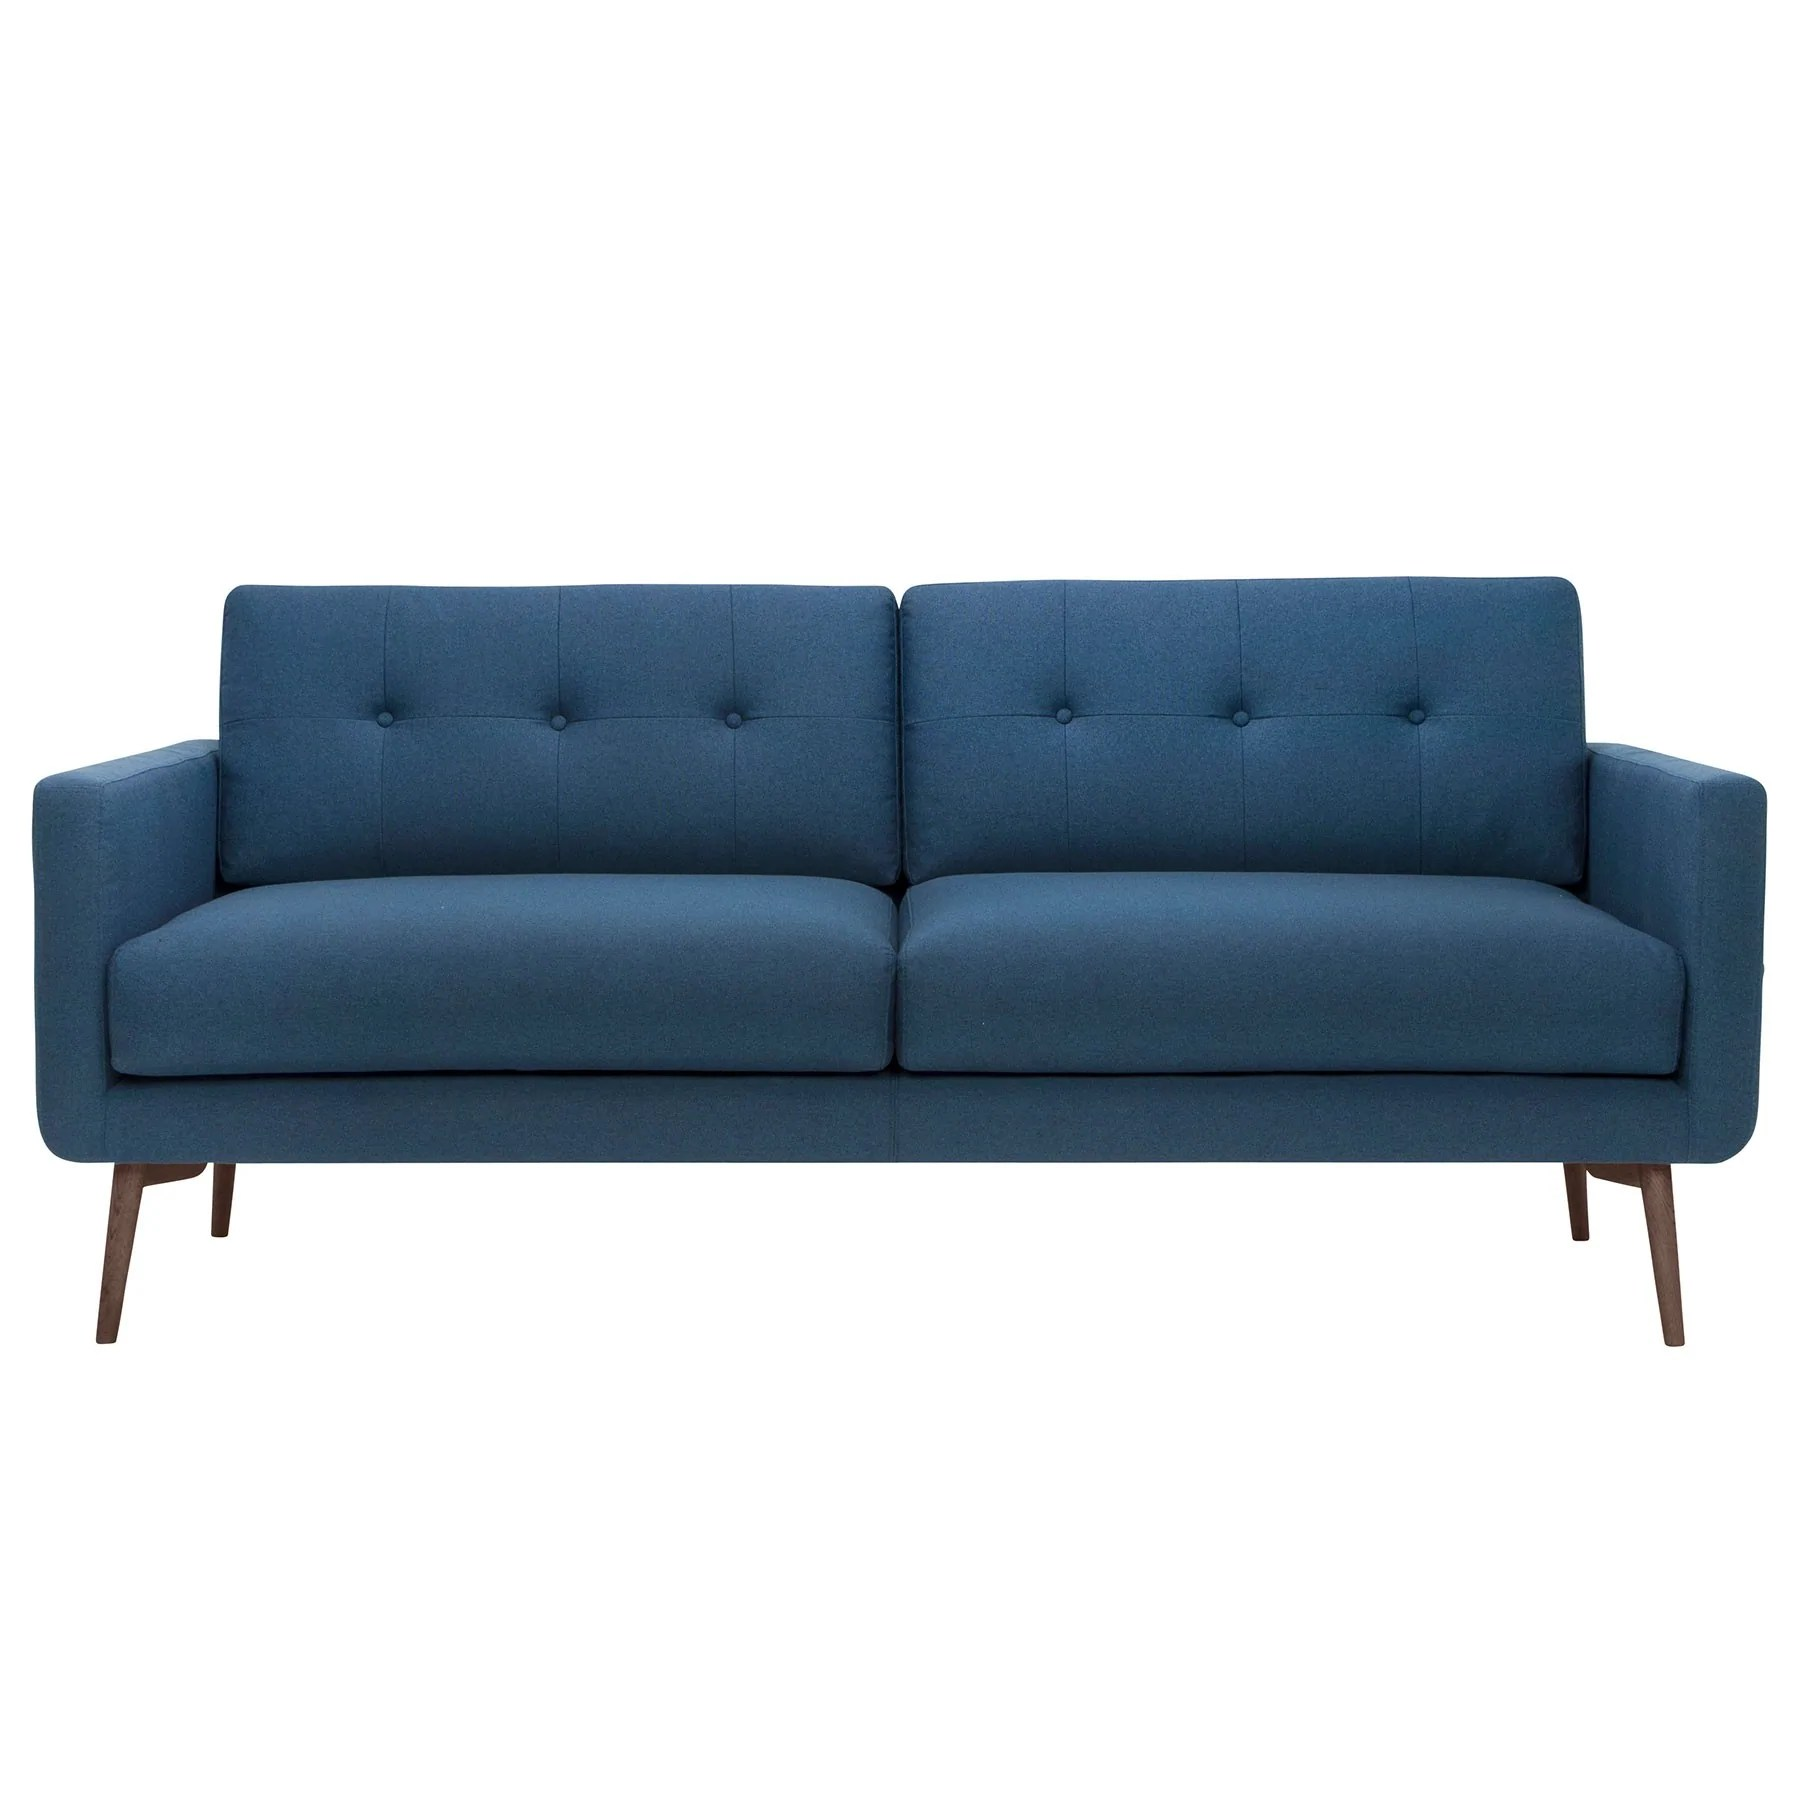 Sofa X Long Ingrid Sofa